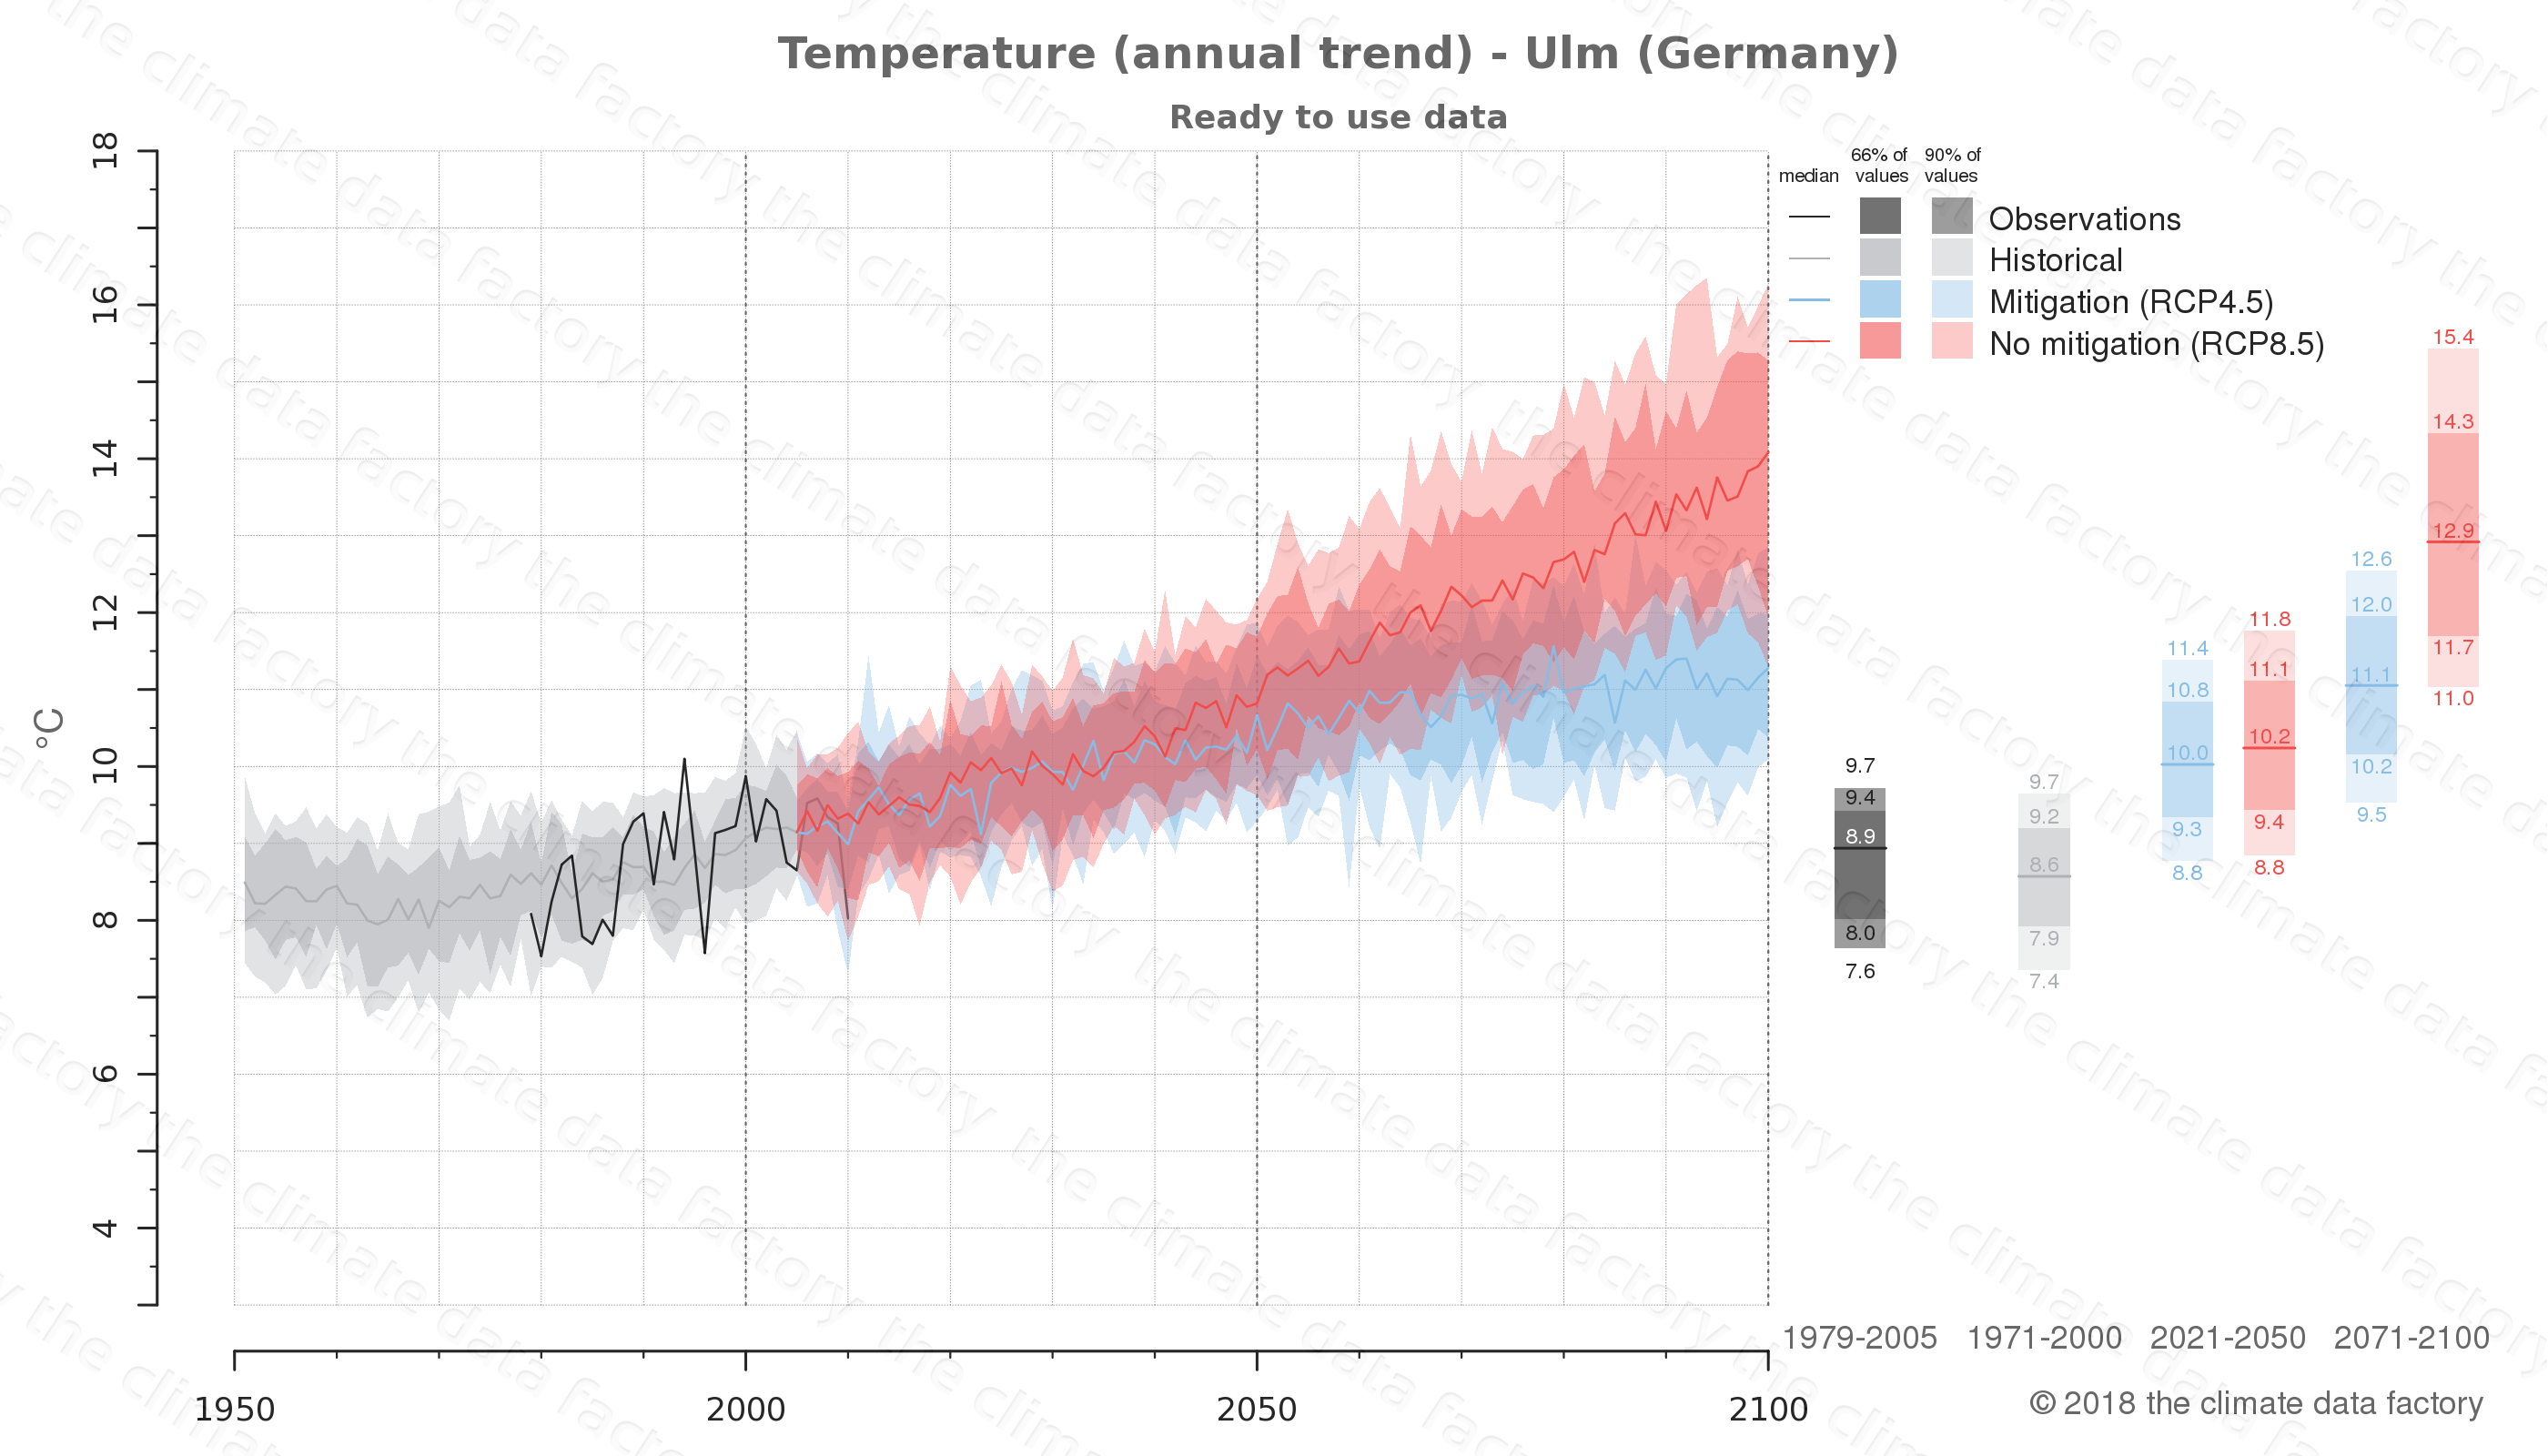 climate change data policy adaptation climate graph city data temperature ulm germany